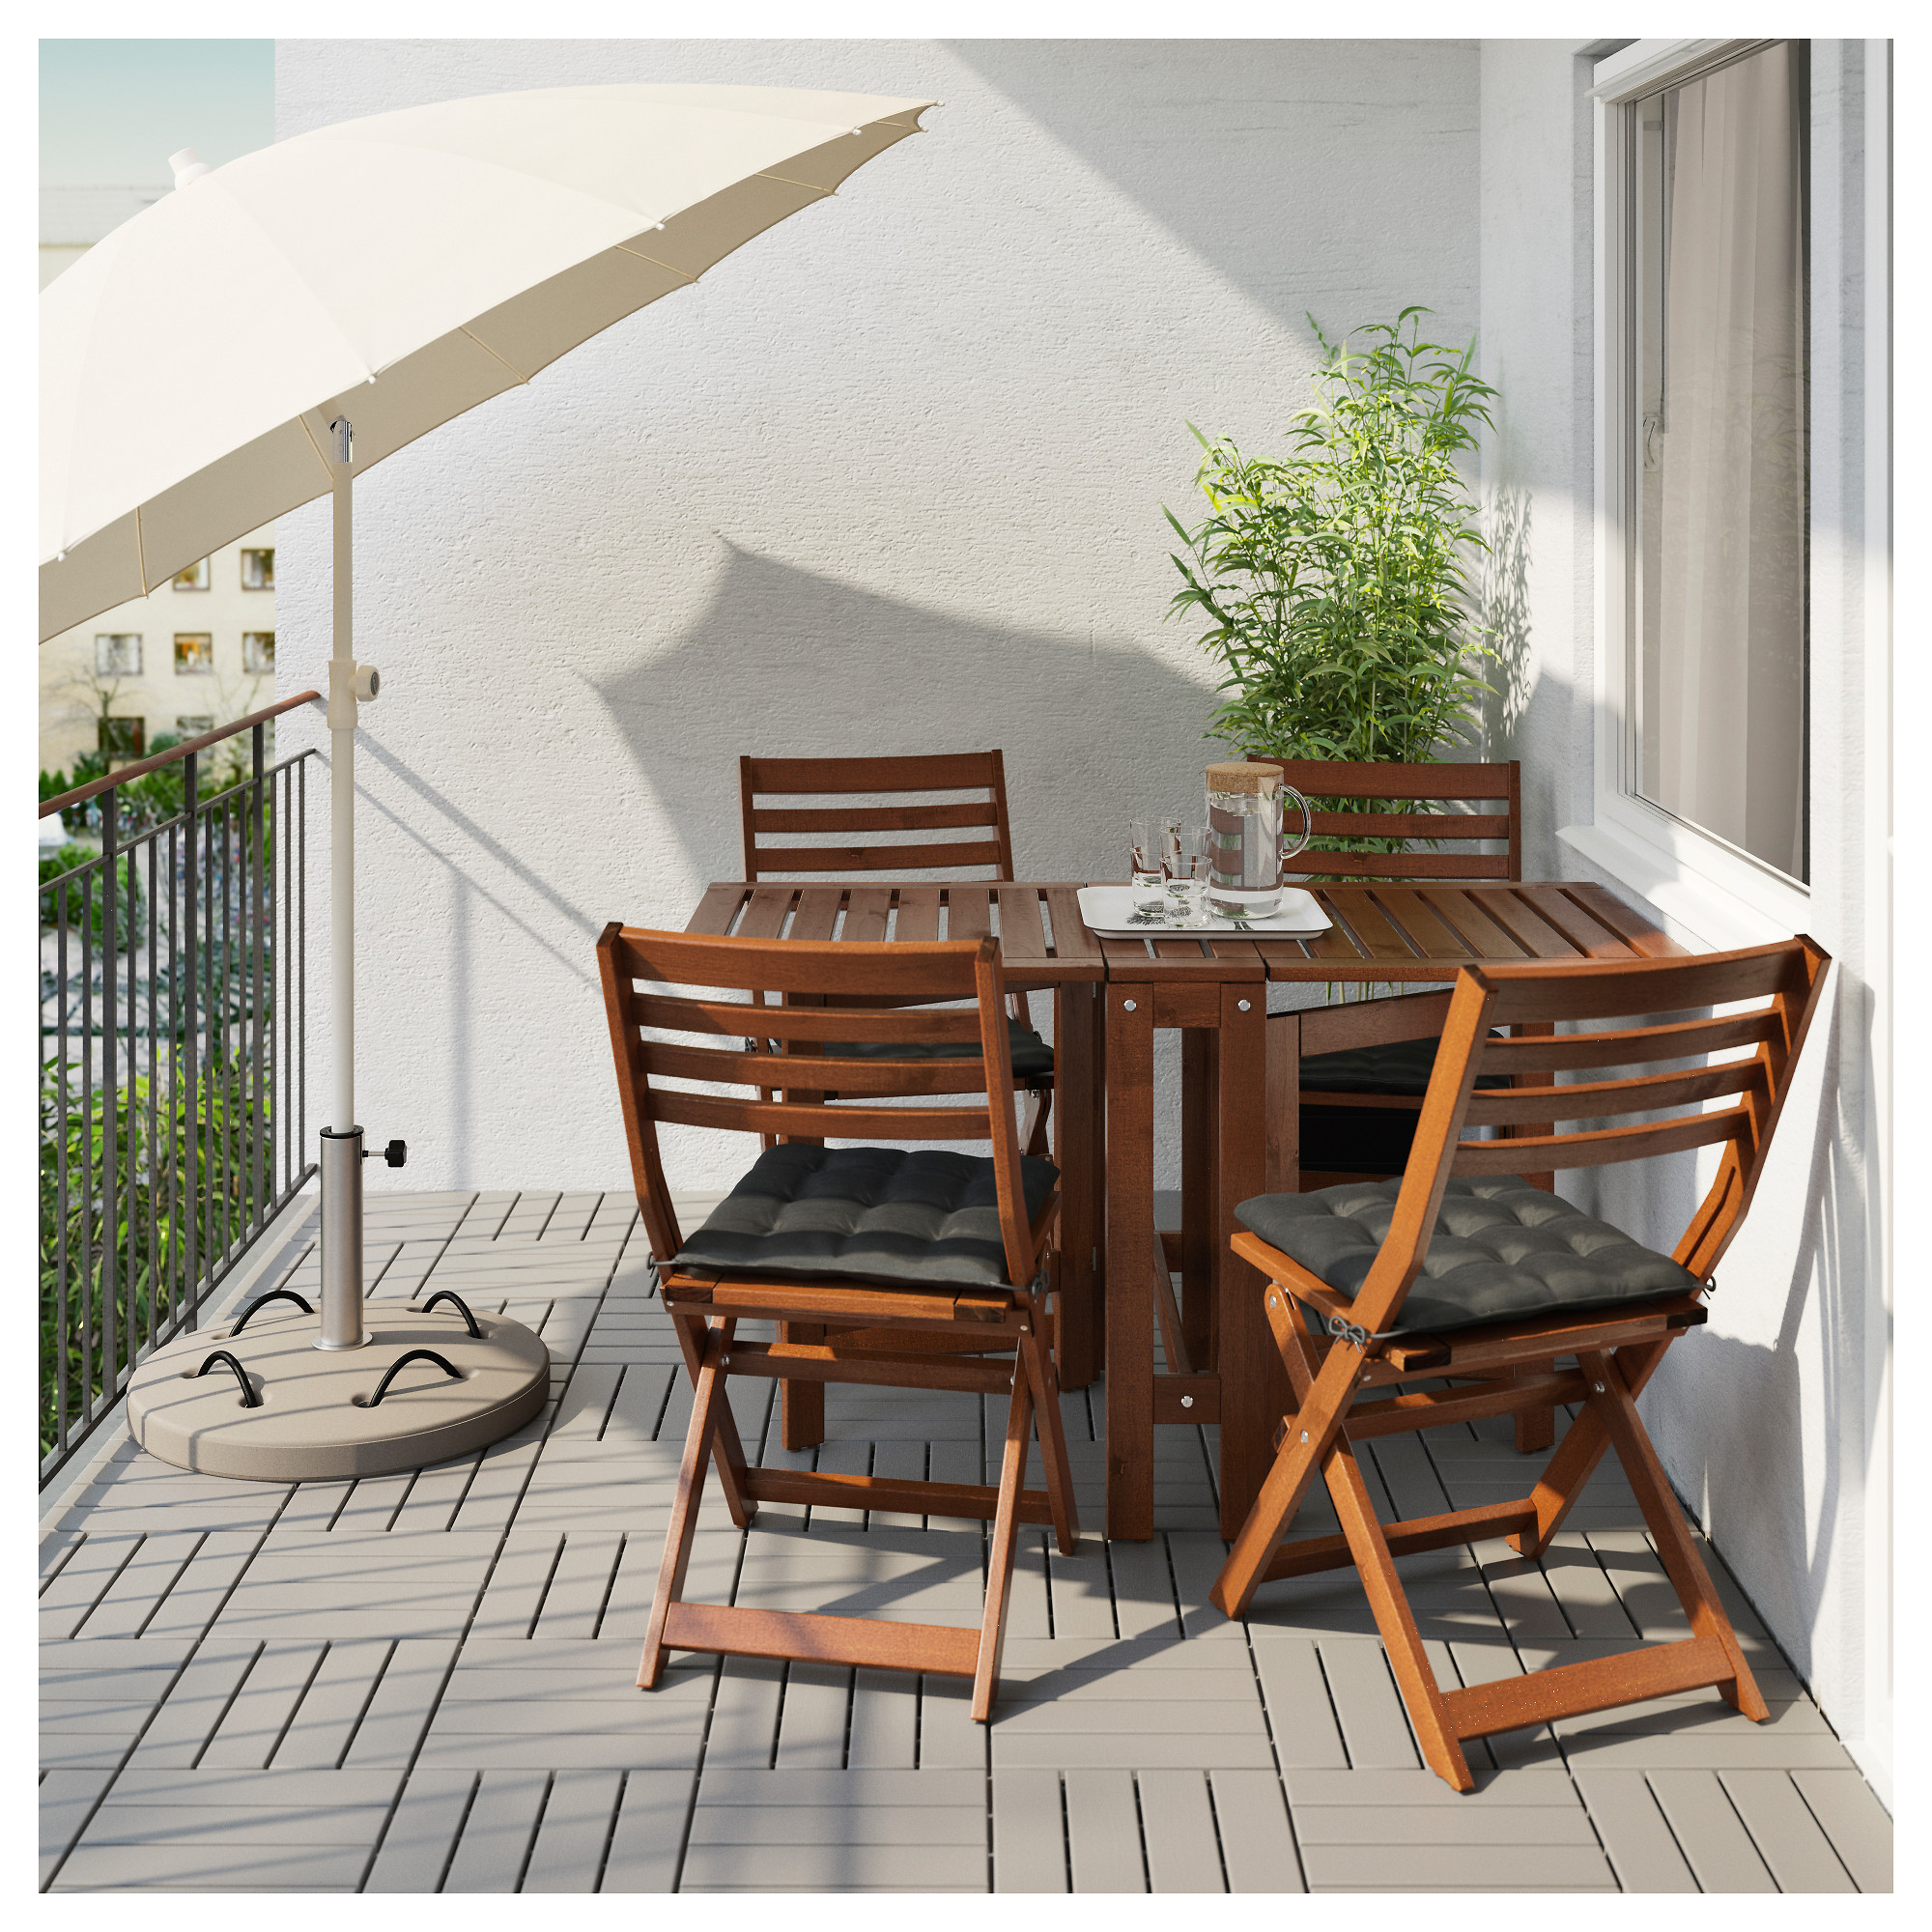 oz furniture design. Awesome Oz Design Outdoor Furniture With